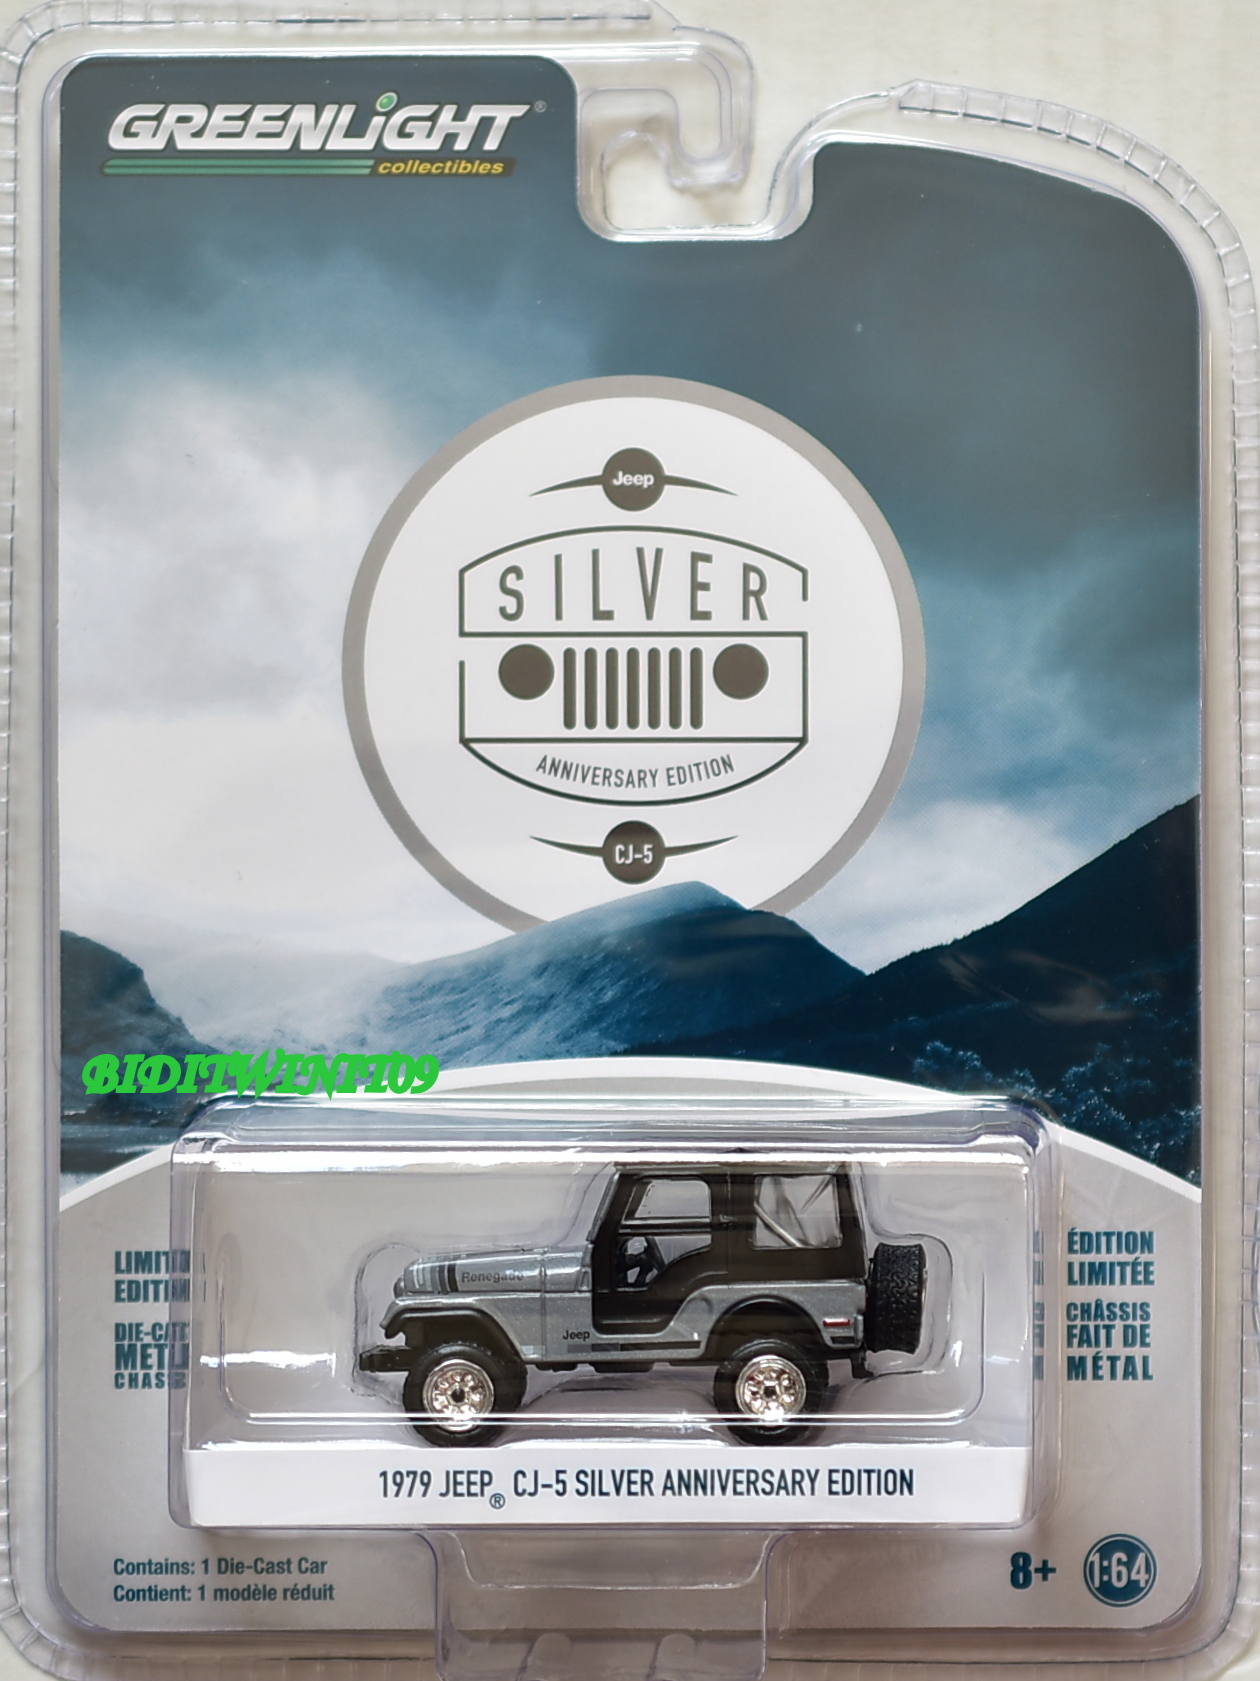 GREENLIGHT ANNIVERSARY SERIES 6 1979 JEEP CJ-5 SILVER ANNIVERSARY EDITION